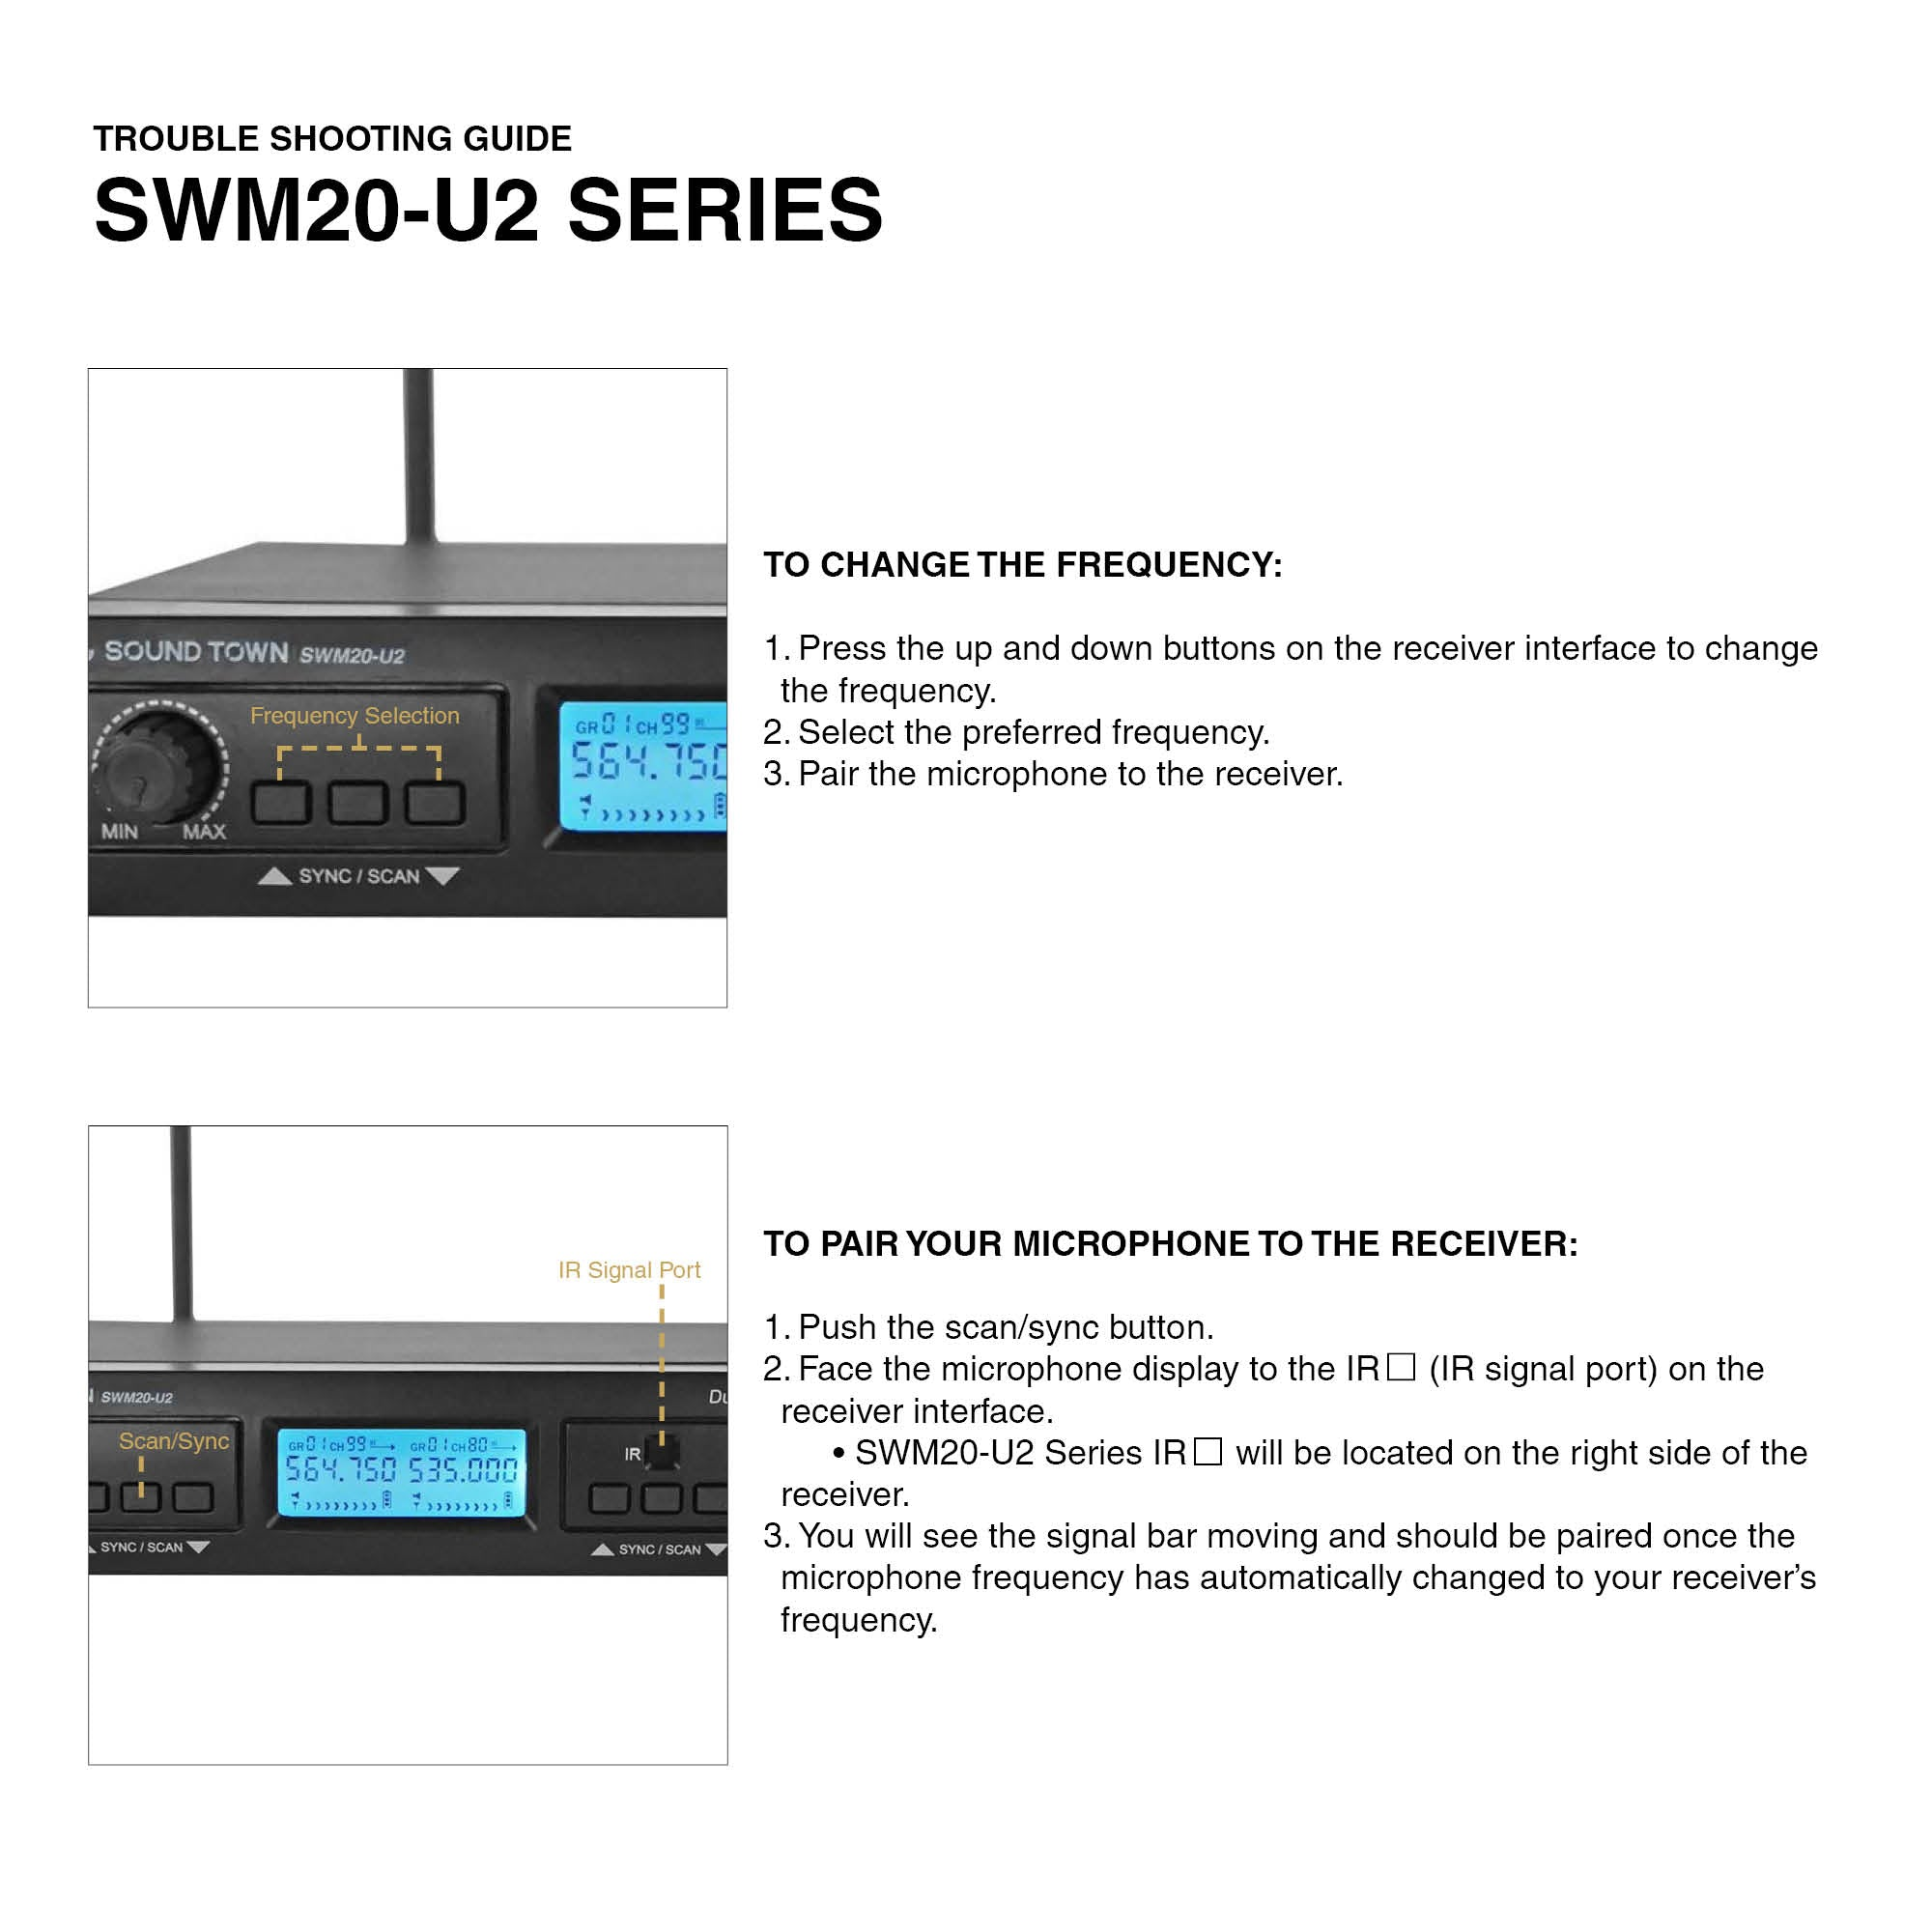 SWM20-U2 SERIES SWM20-U2HH SWM20-U2HB SWM20-U2BB Troubleshooting Guide How to Connect Sync Microphone to Receiver How to Change the Frequency